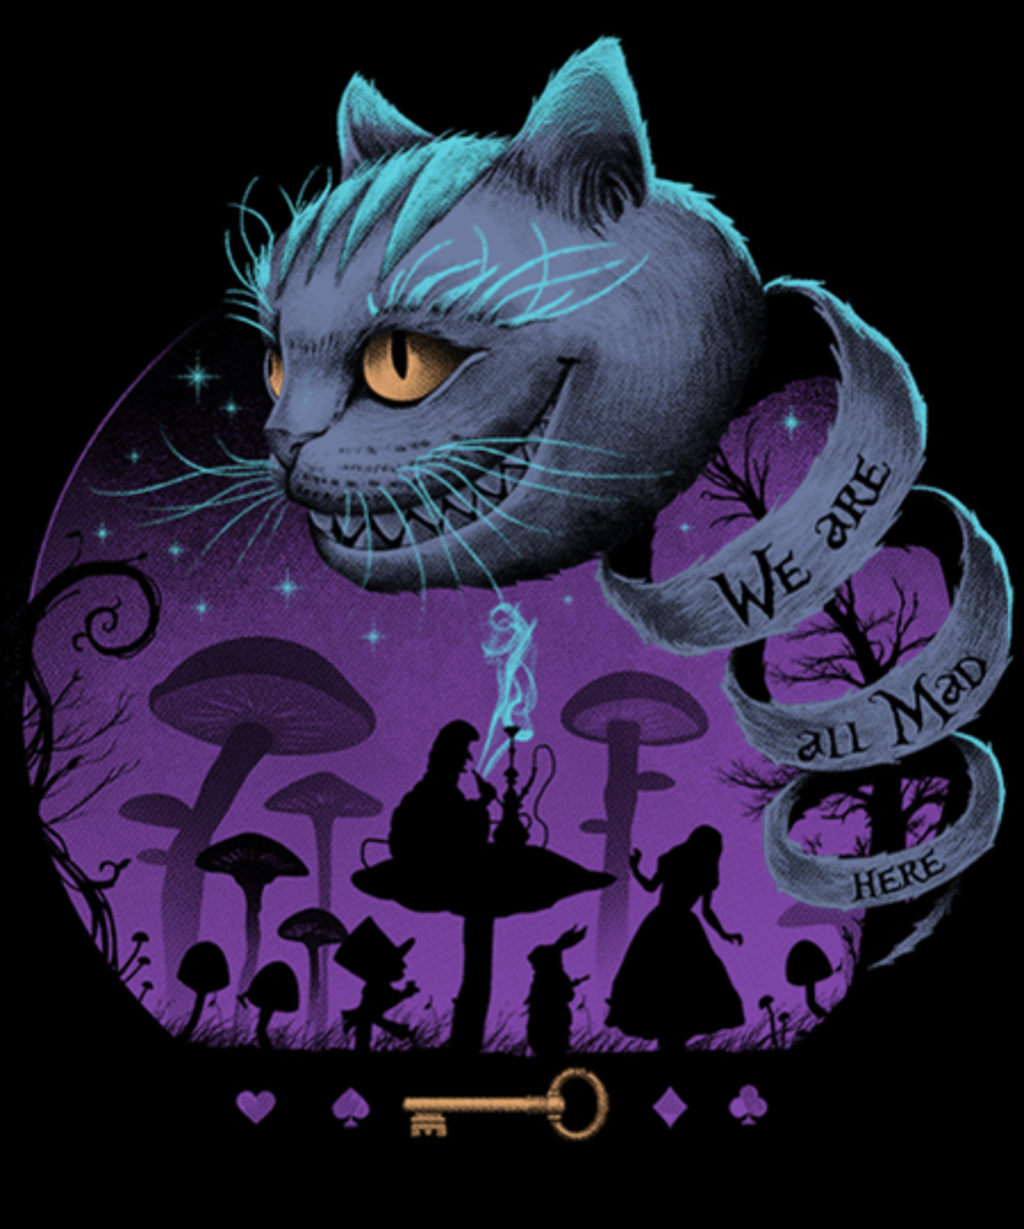 Qwertee: Wonderful Madness